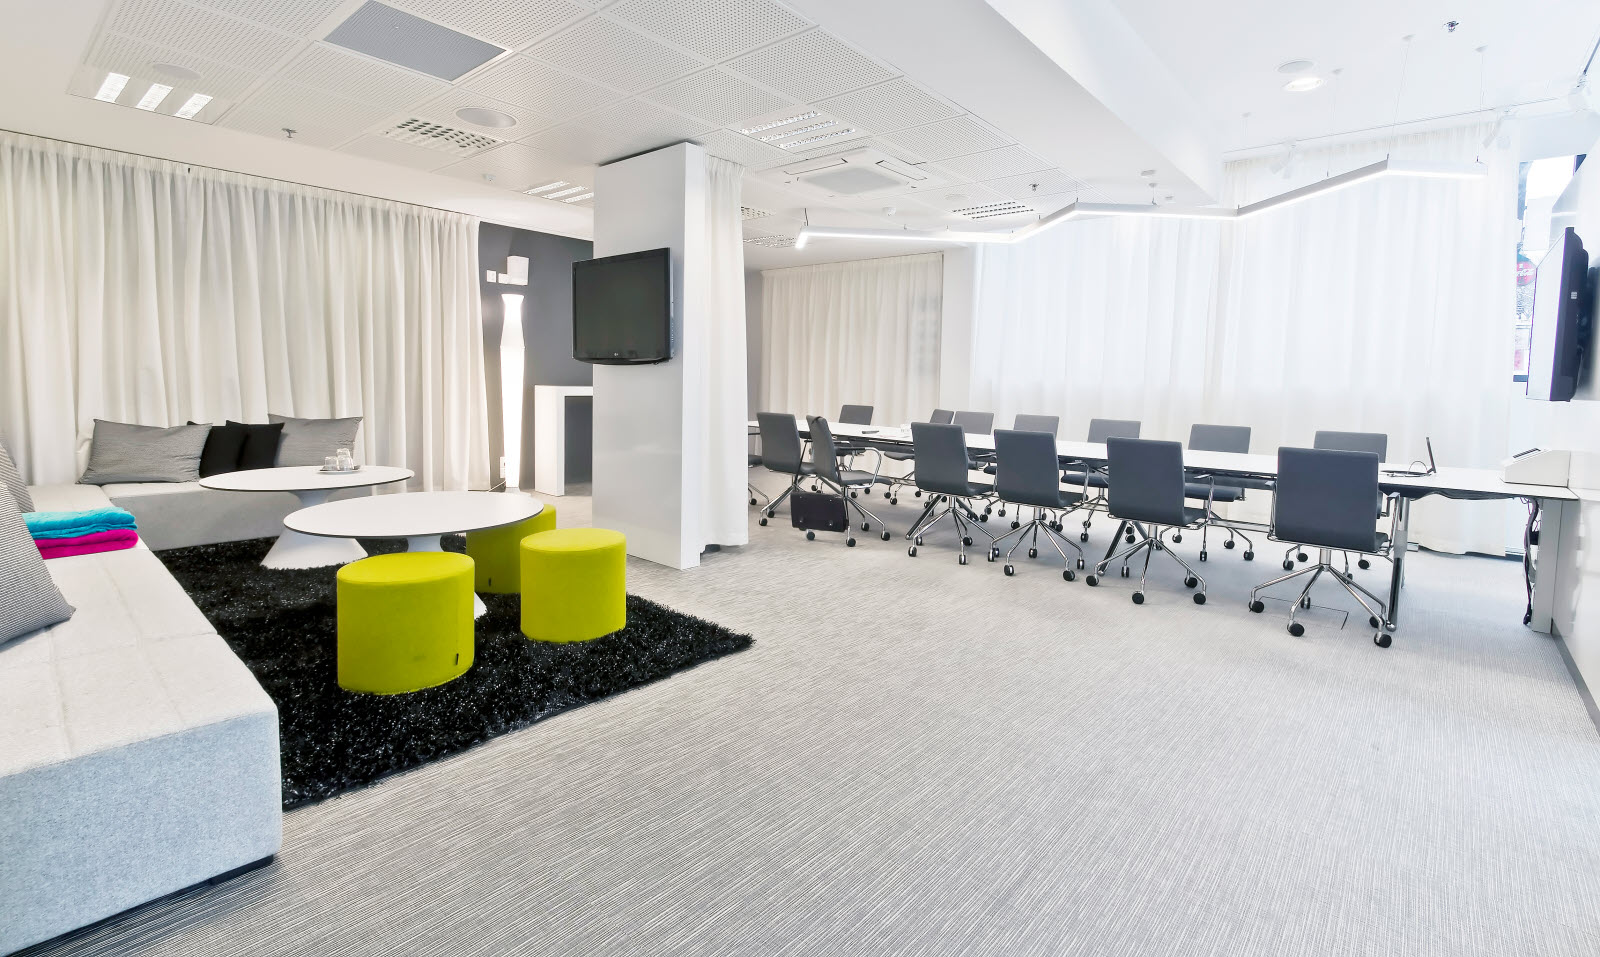 Scandic Tampere Station, meeting, conference room